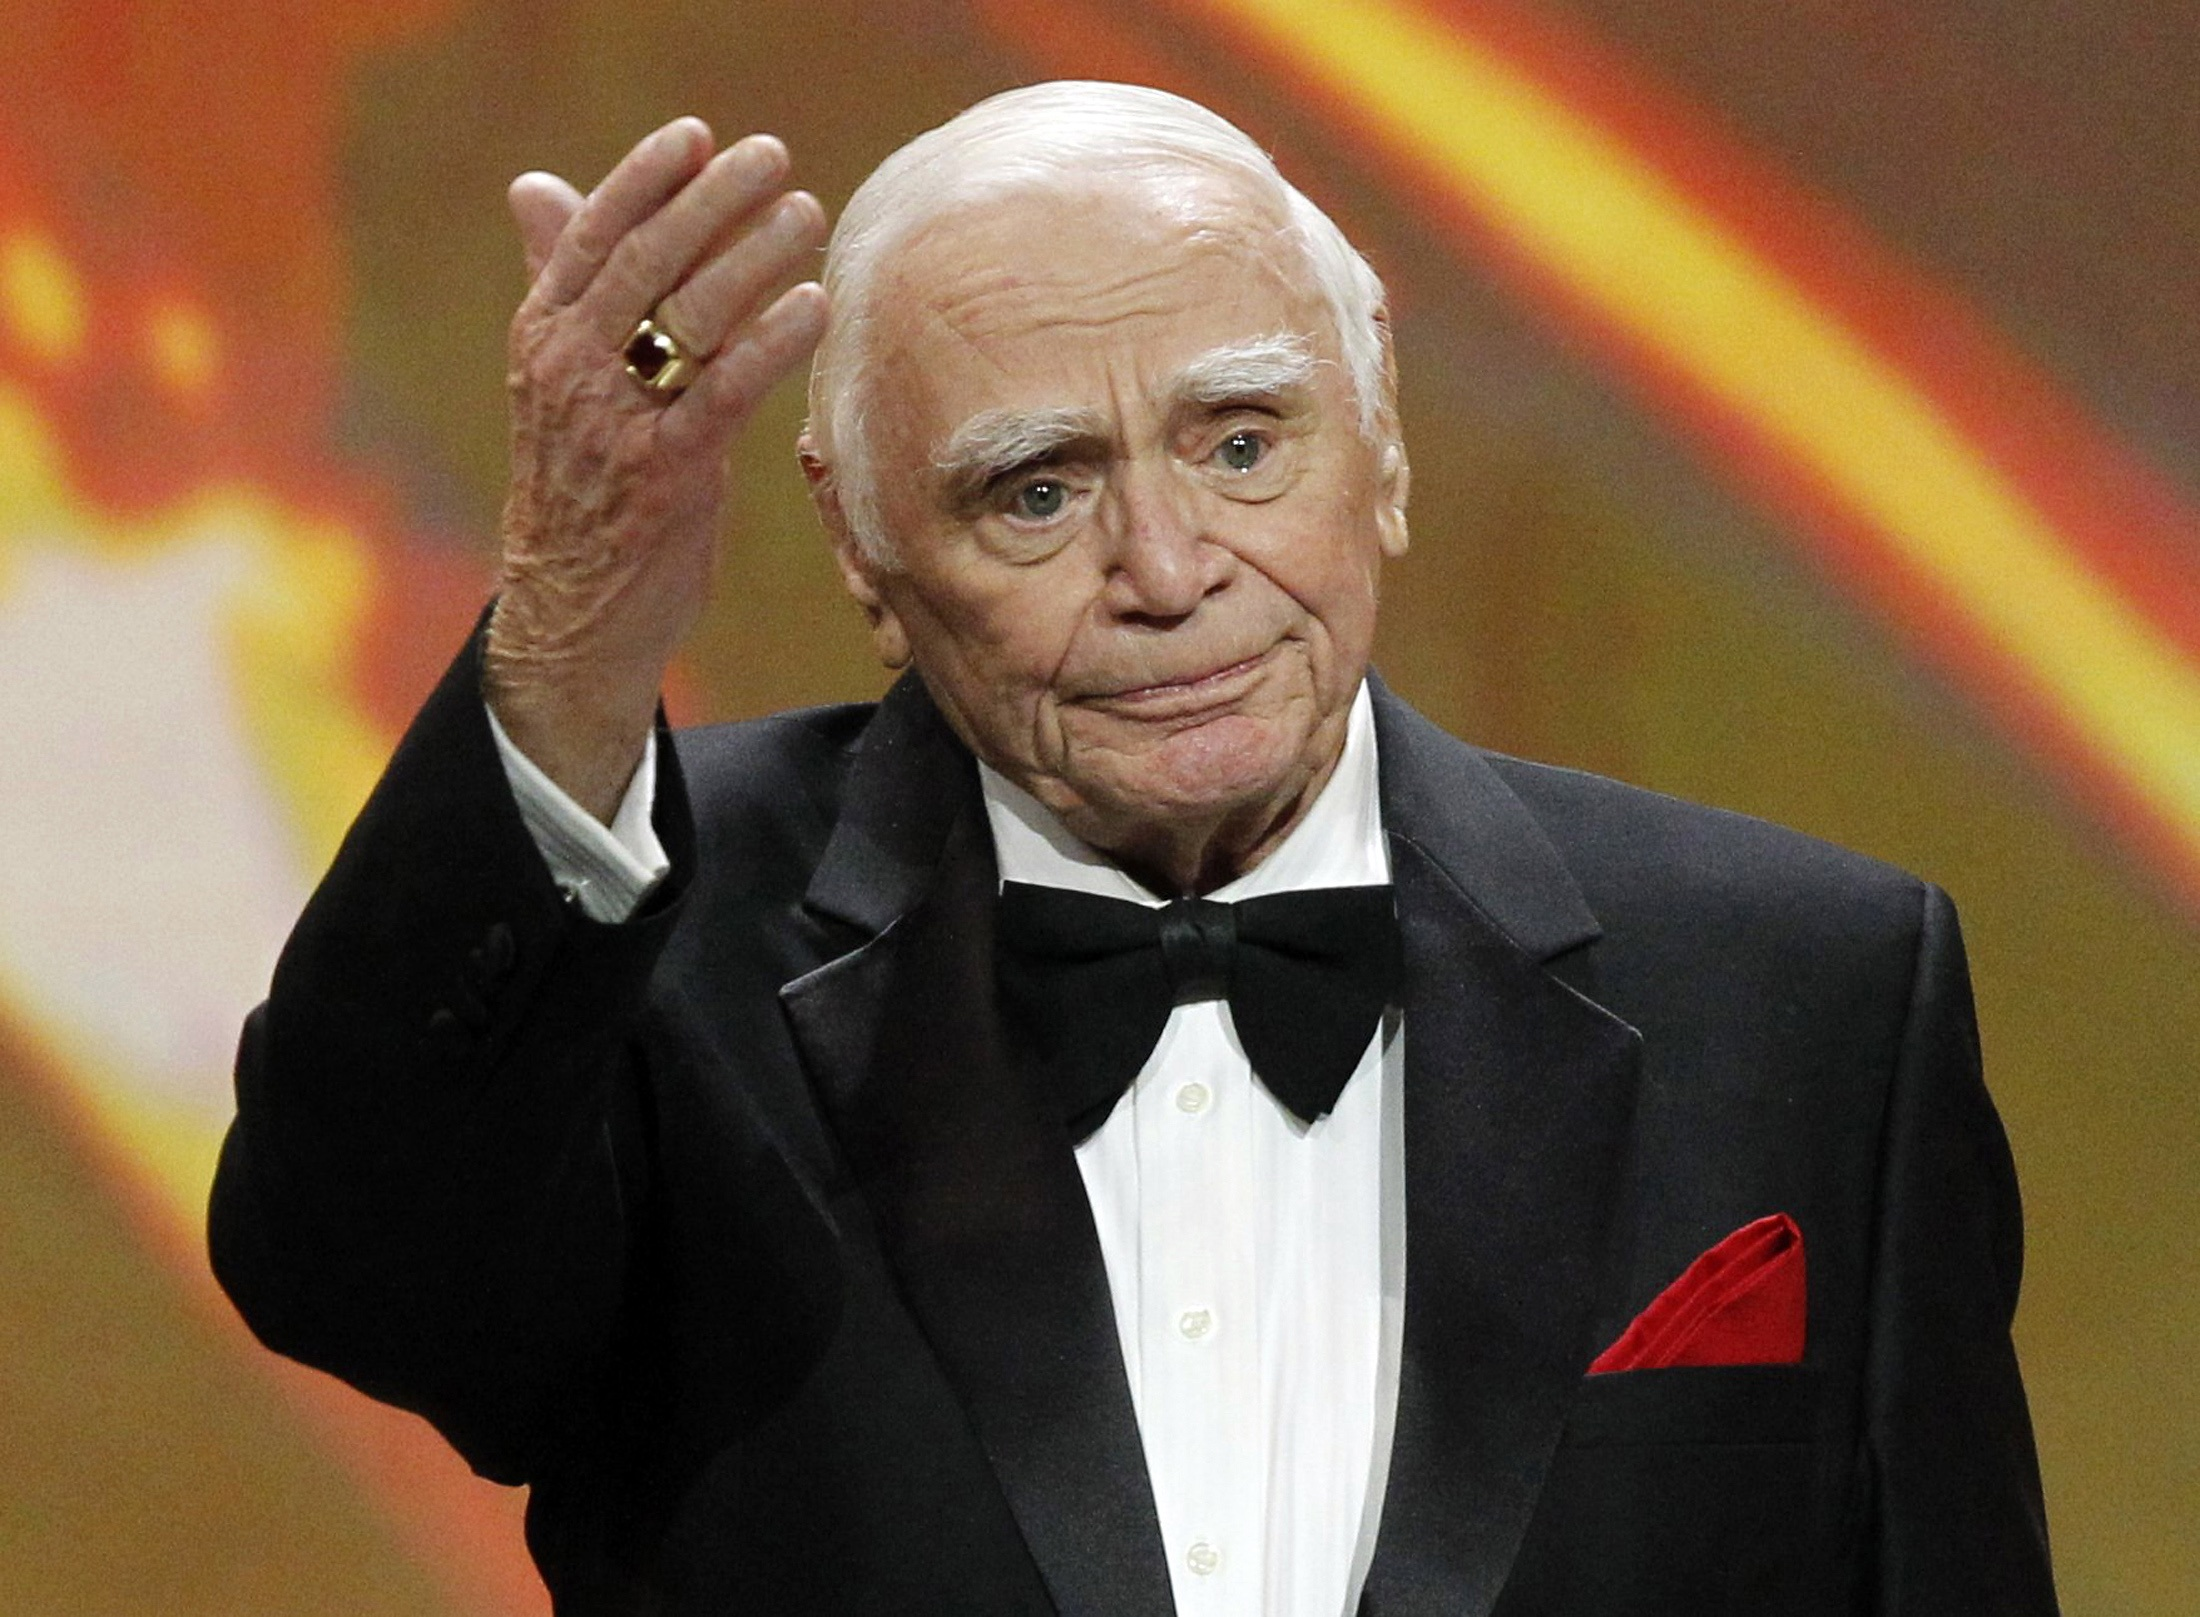 Lifetime achievement honoree Ernest Borgnine waves after receiving his award at the 17th annual Screen Actors Guild Awards in Los Angeles in 2011. Borgnine died at the age of 95, his longtime publicist said. (REUTERS/Mario Anzuoni)